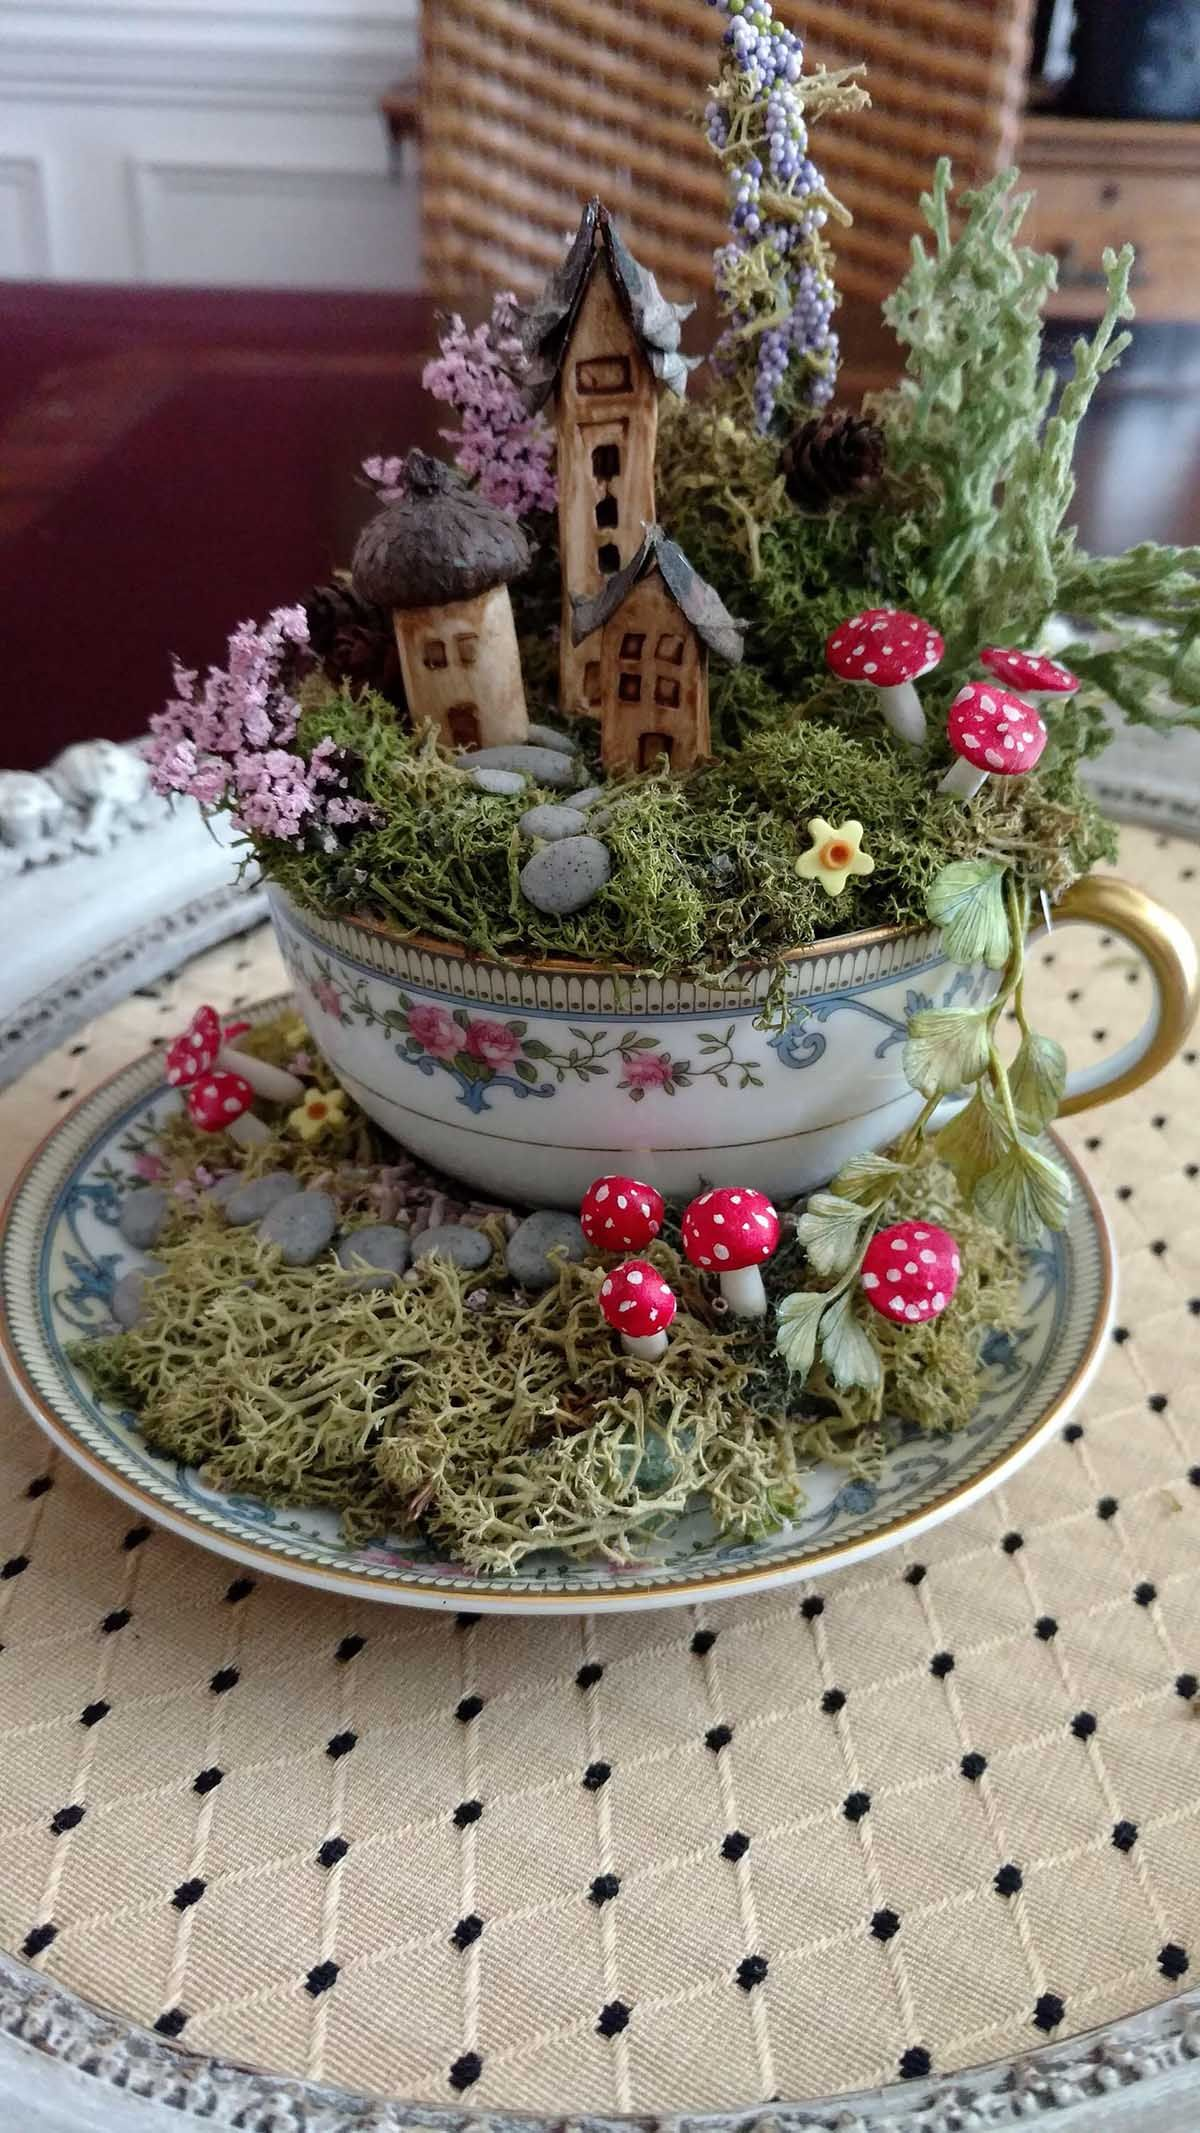 Mini garden inspiration   Delightful Teacup Mini Garden Ideas to Add Bliss to Your Home